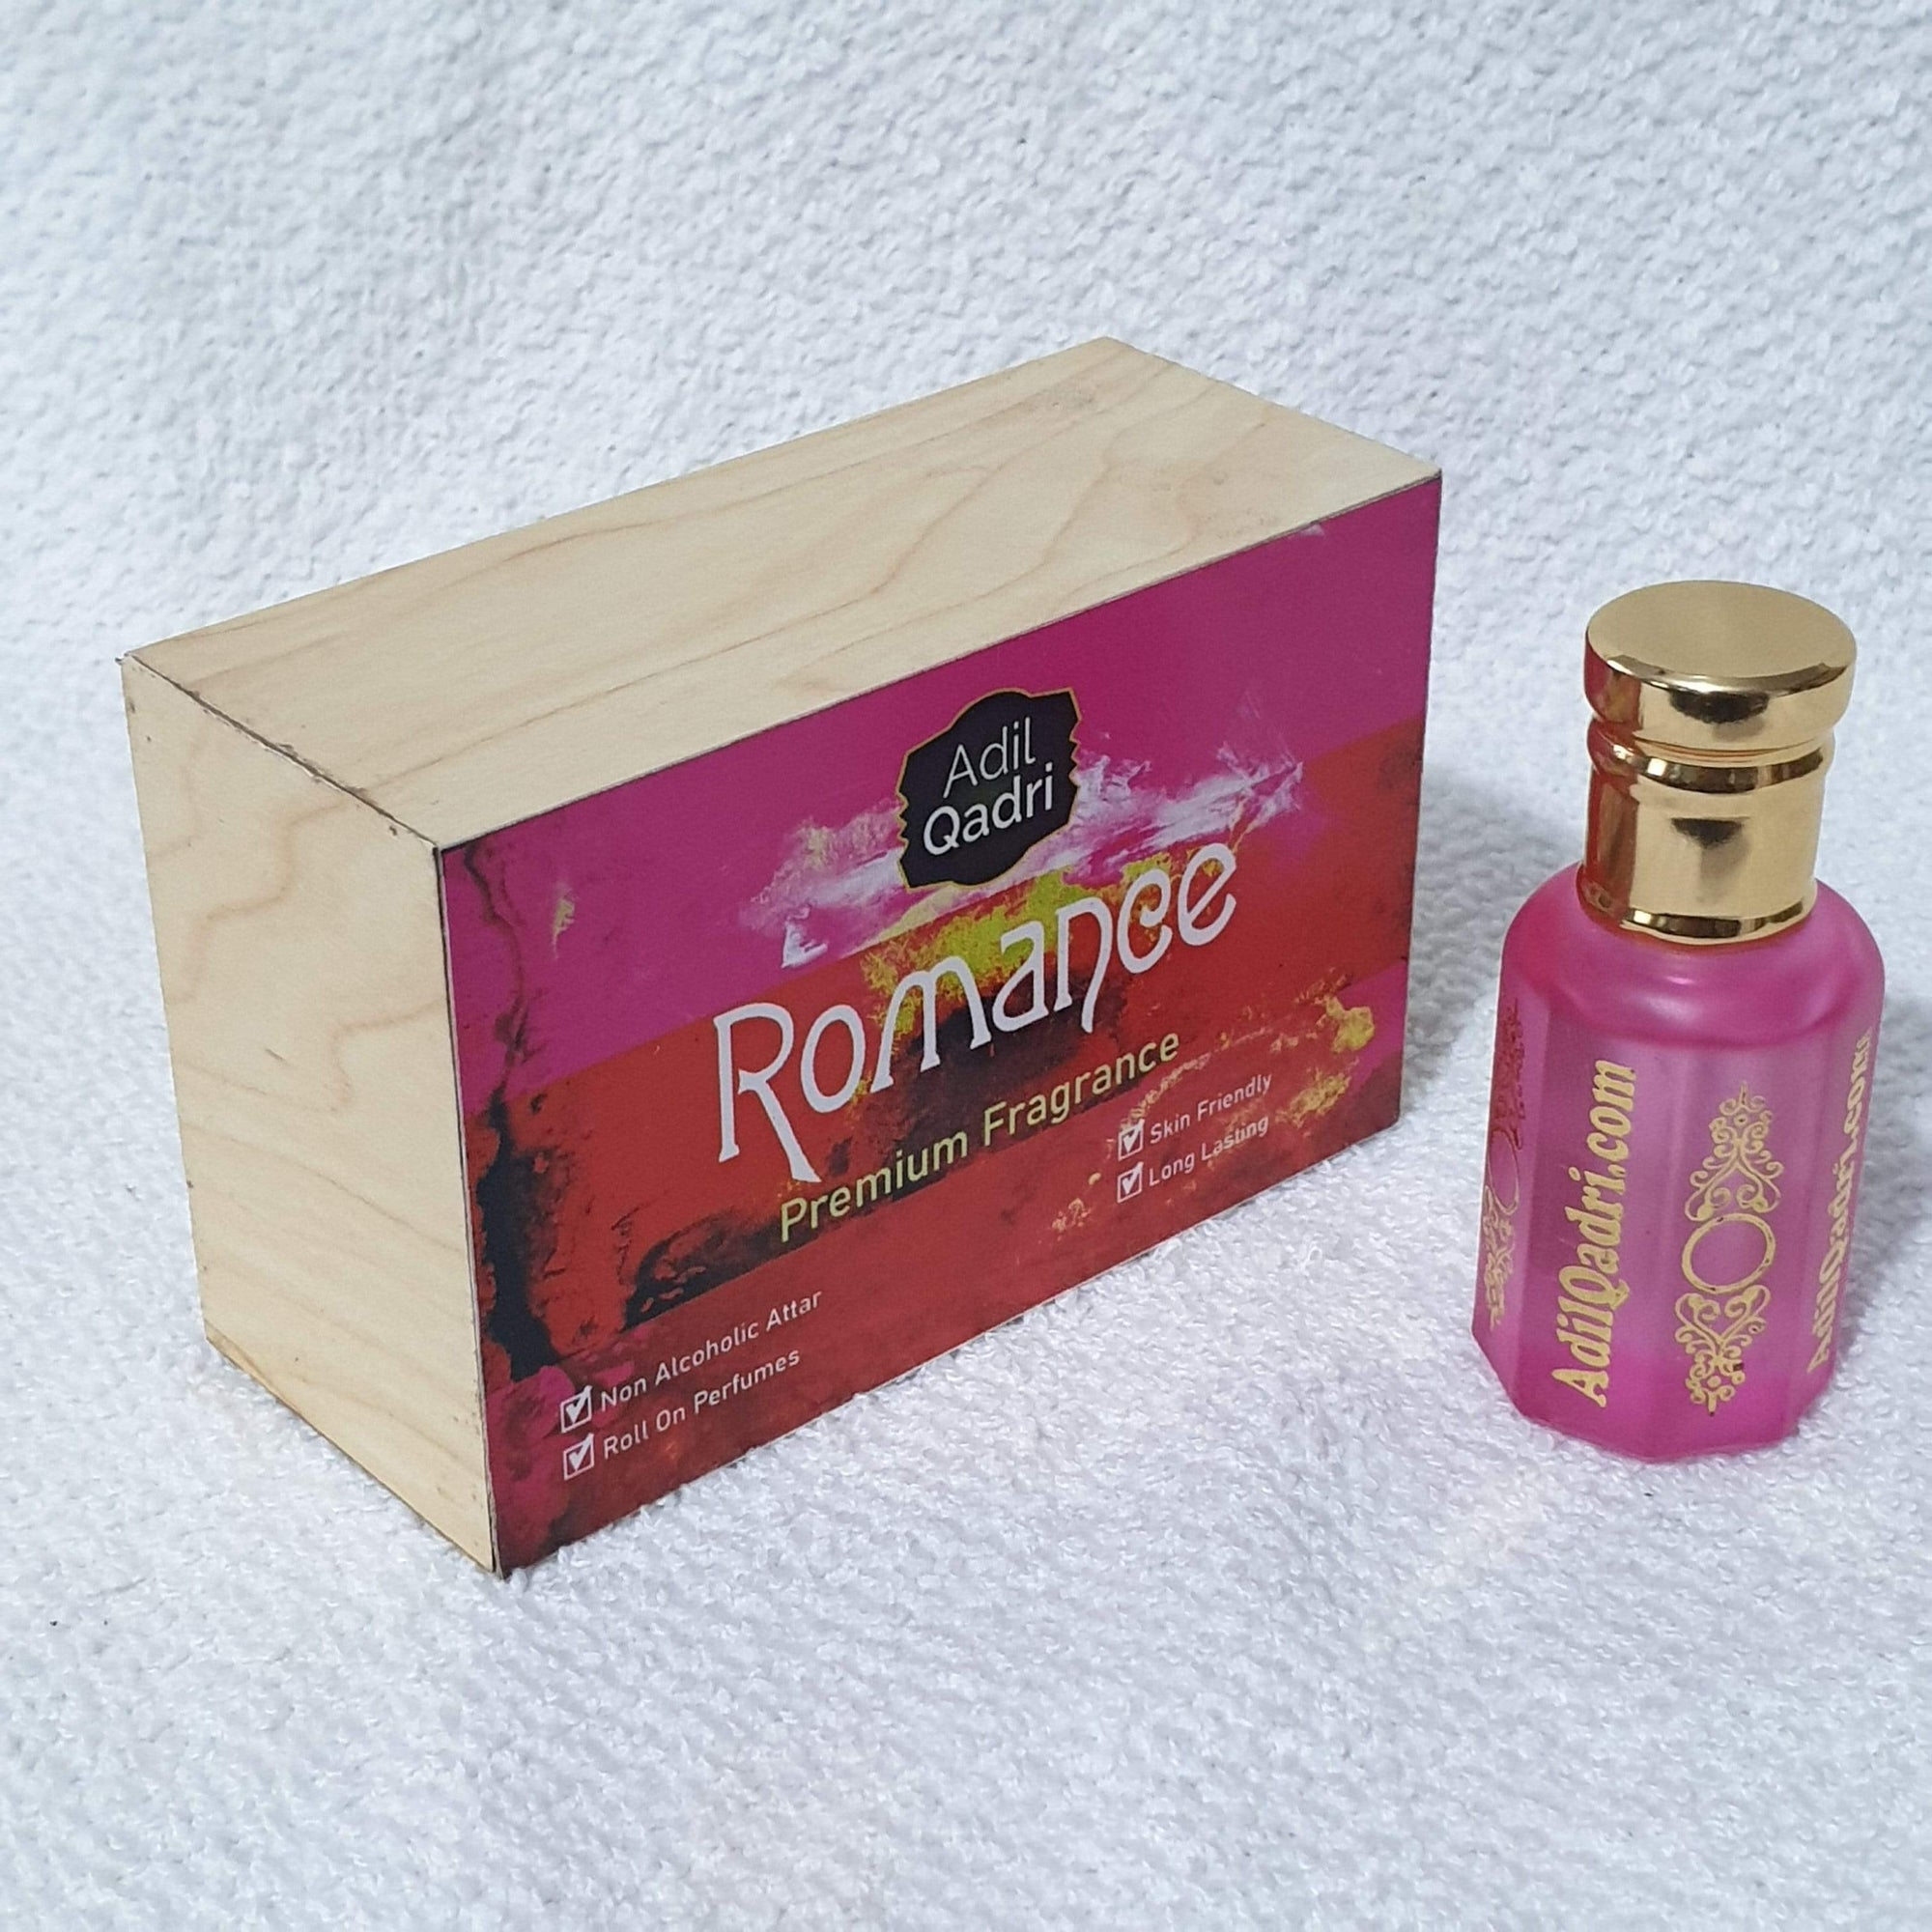 Adilqadri Romance Premium Quality  10 Ml. Synthetic Attar With Atractive Wooden Box